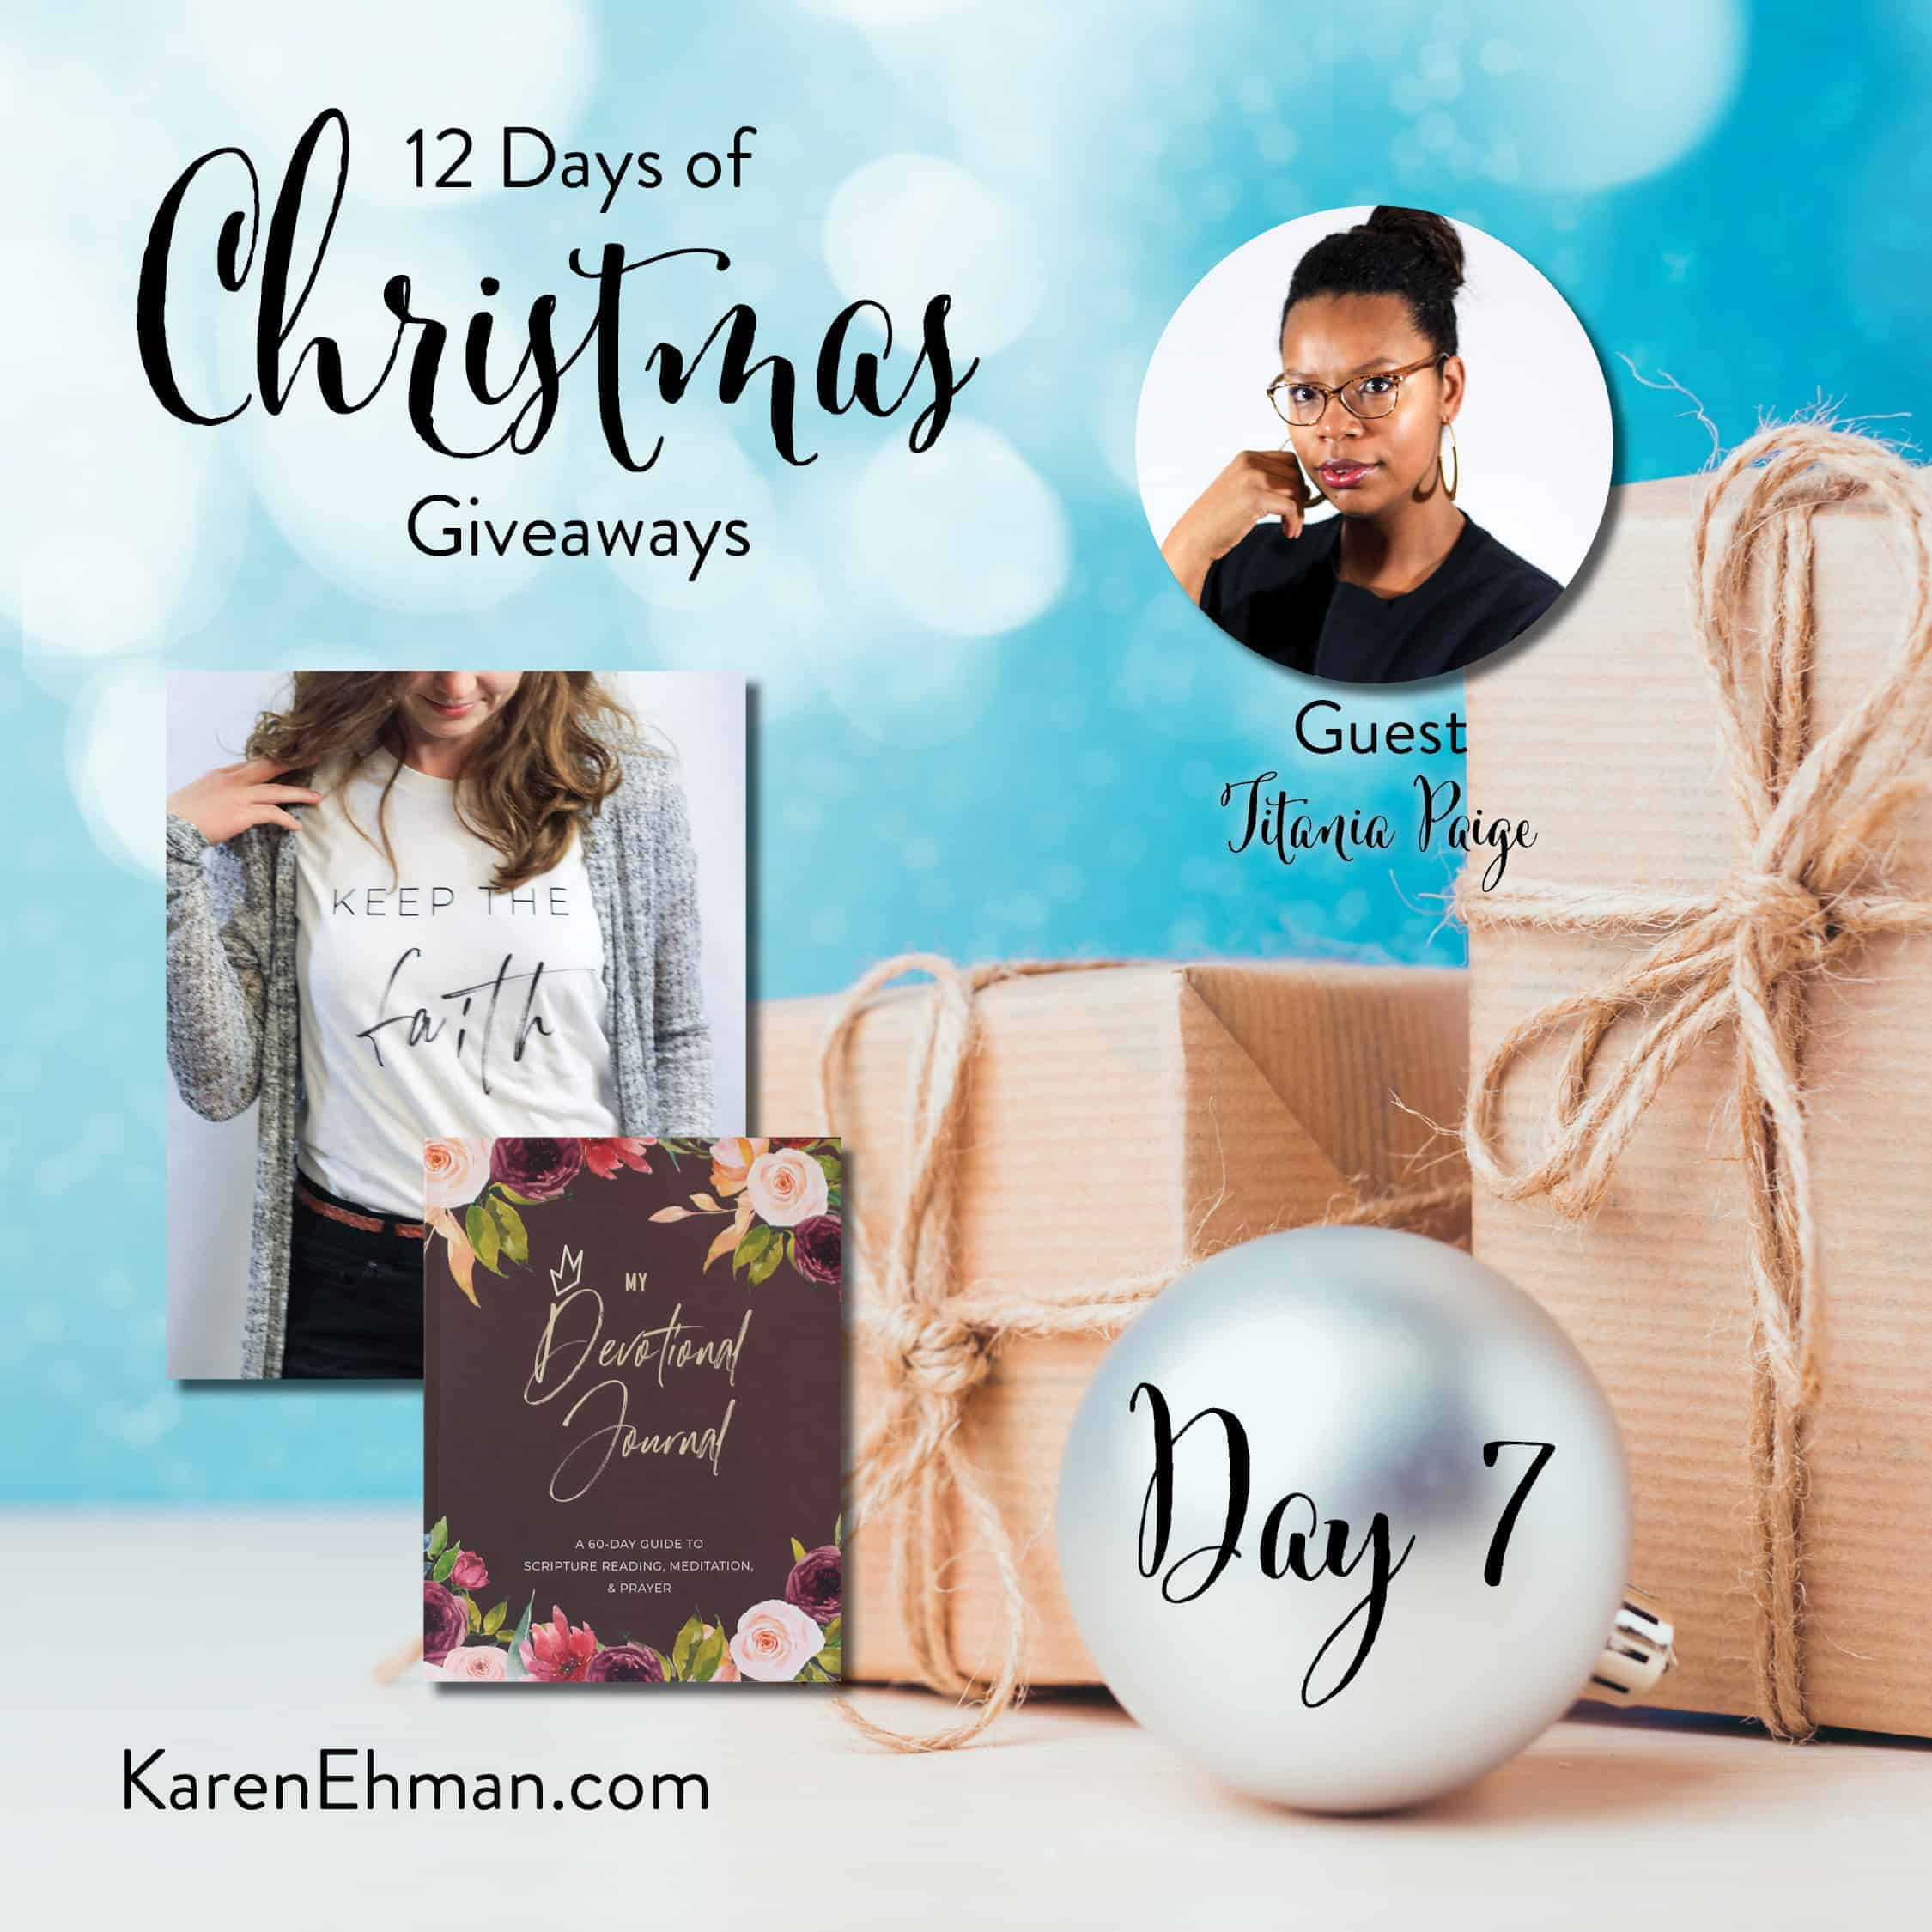 Day 7 of 12 Days of Christmas Giveaways (with Titania Paige)